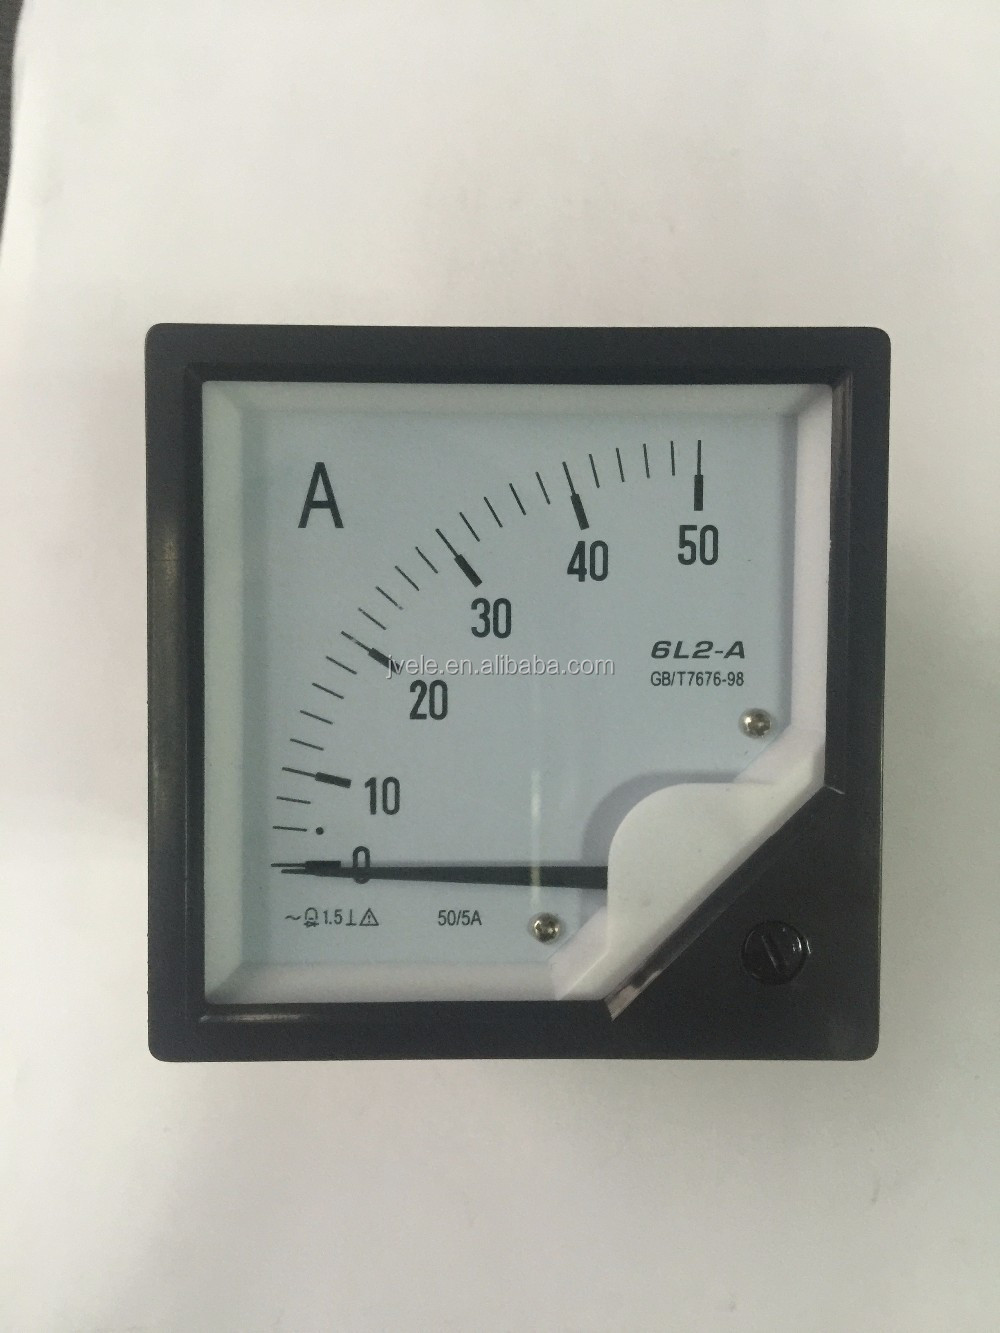 To supply digital panel ac dc ampere meter and volt meter